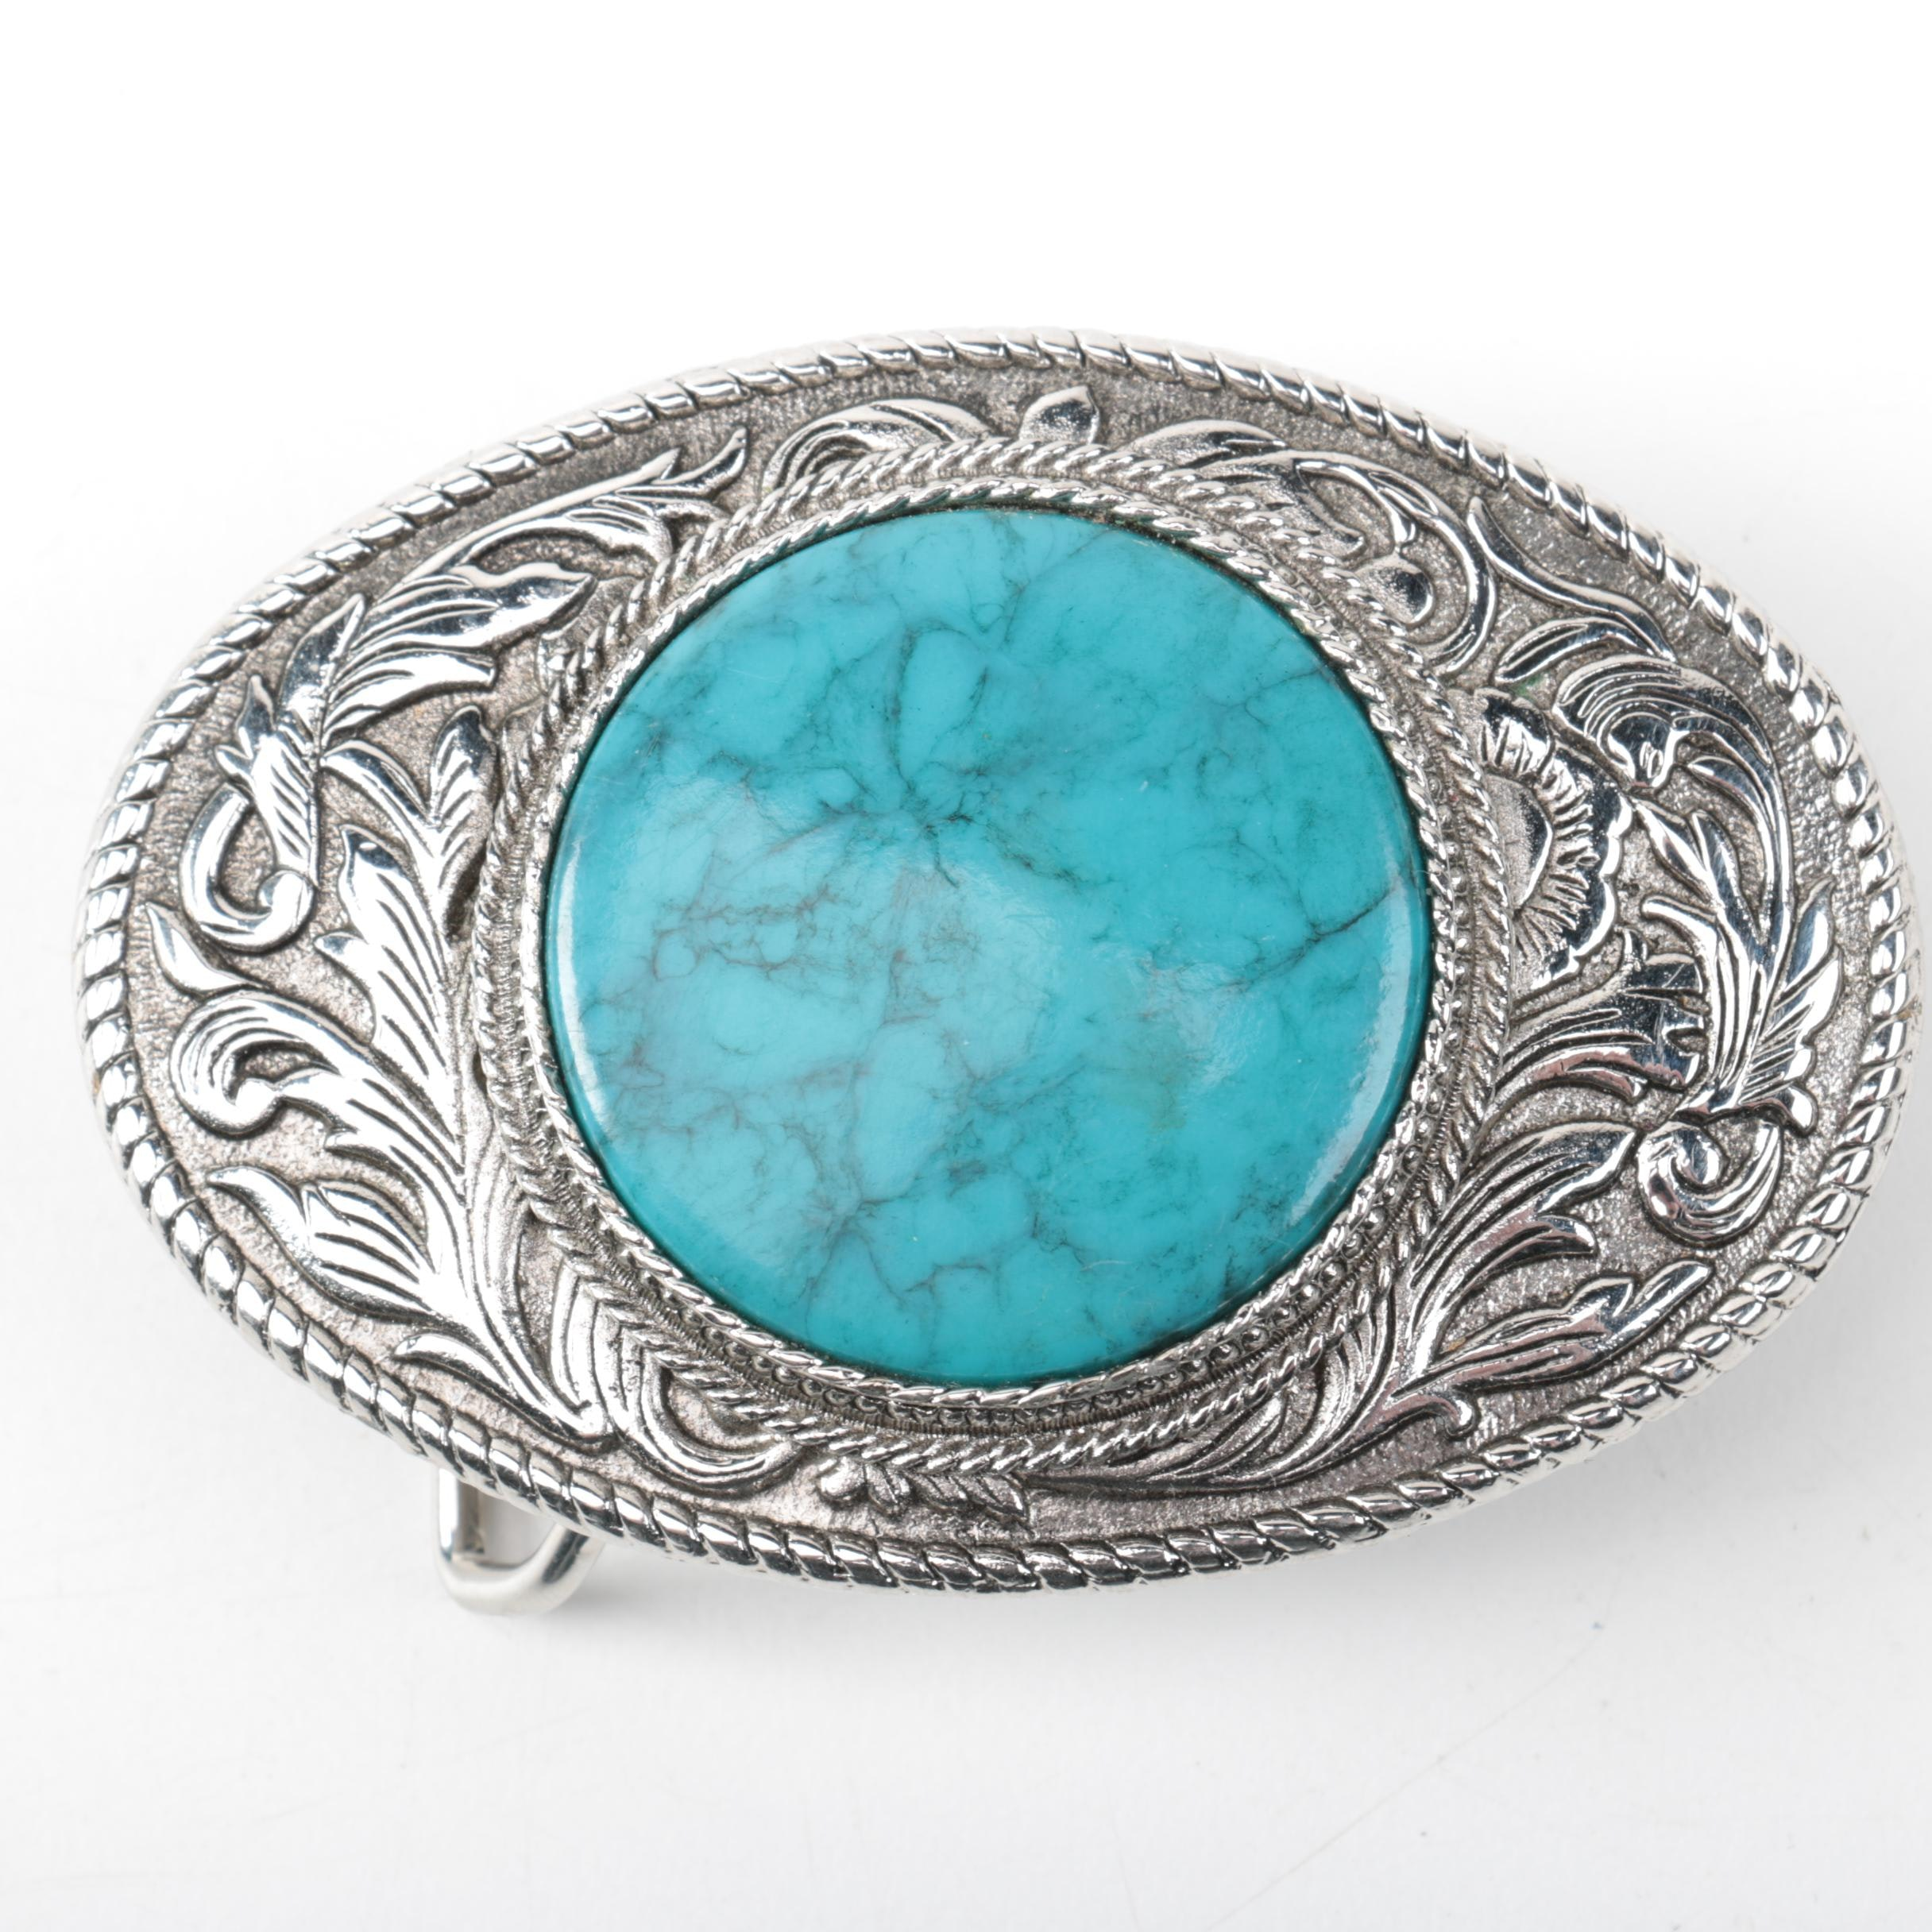 Western-Style Belt Buckle with Blue Cabochon